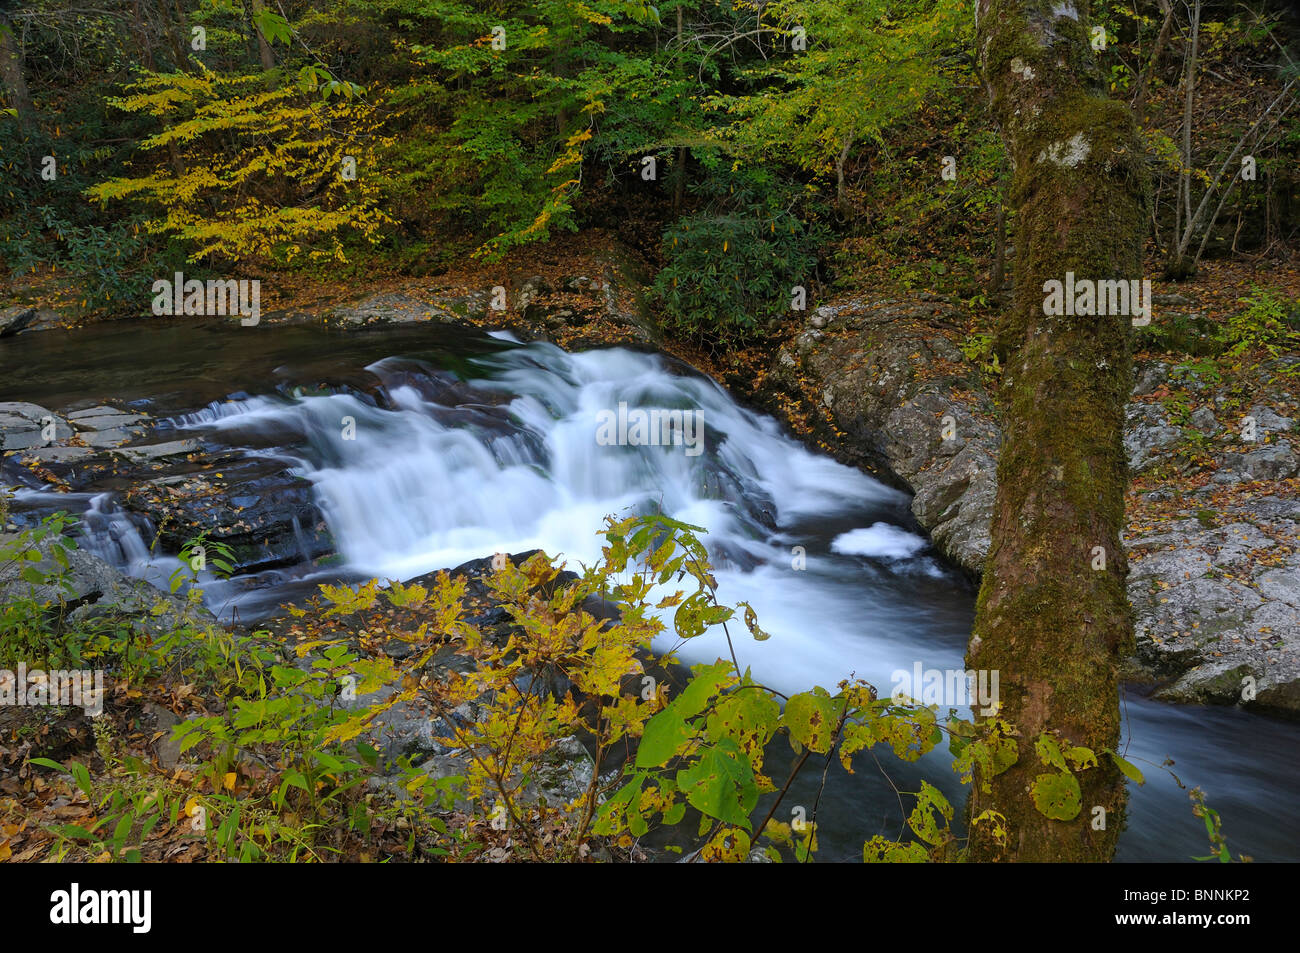 Laurel Creek Waterfall Great Smoky Mountains forest National Park Tennessee USA - Stock Image